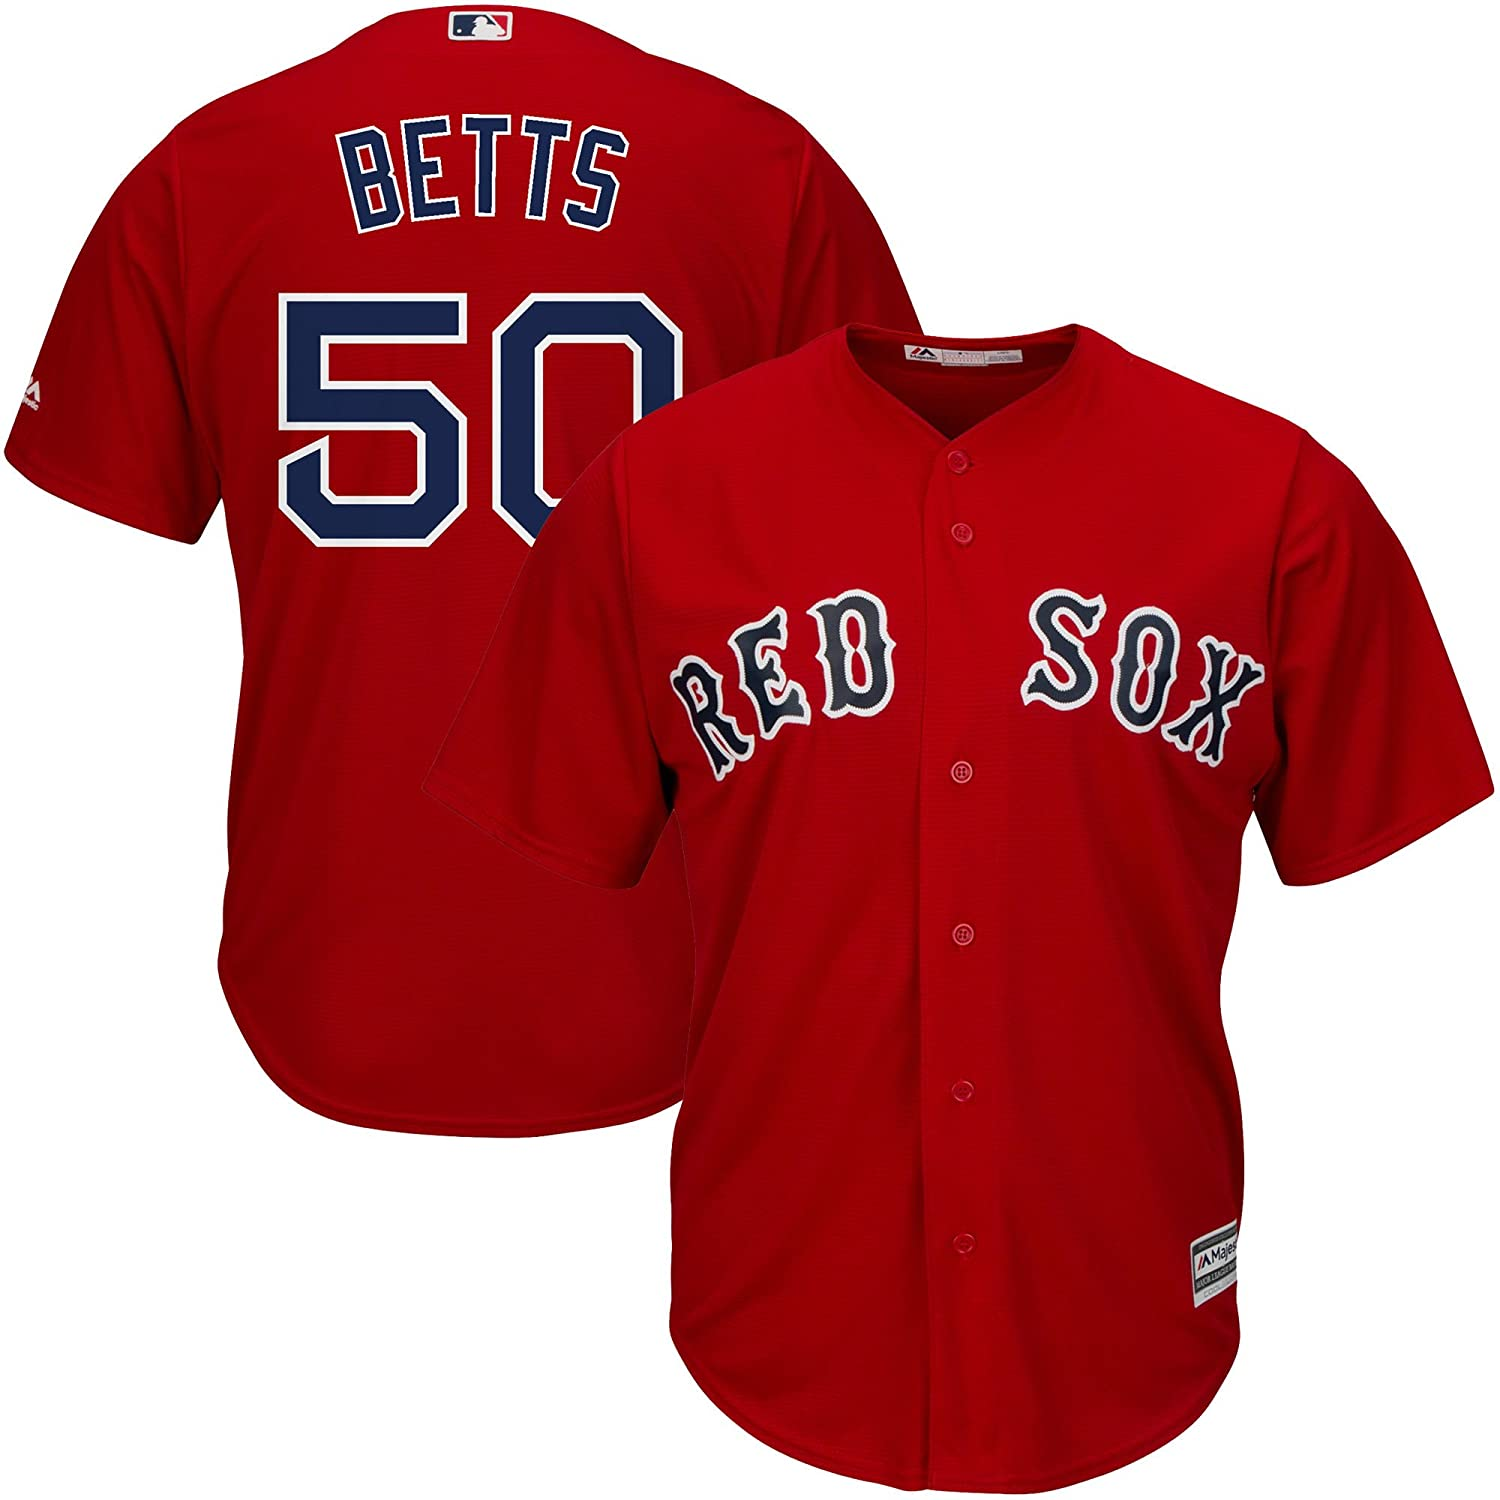 638c4fe9b Amazon.com  Majestic Mookie Betts Boston Red Sox MLB Youth Red Alternate  Cool Base Replica Jersey  Clothing